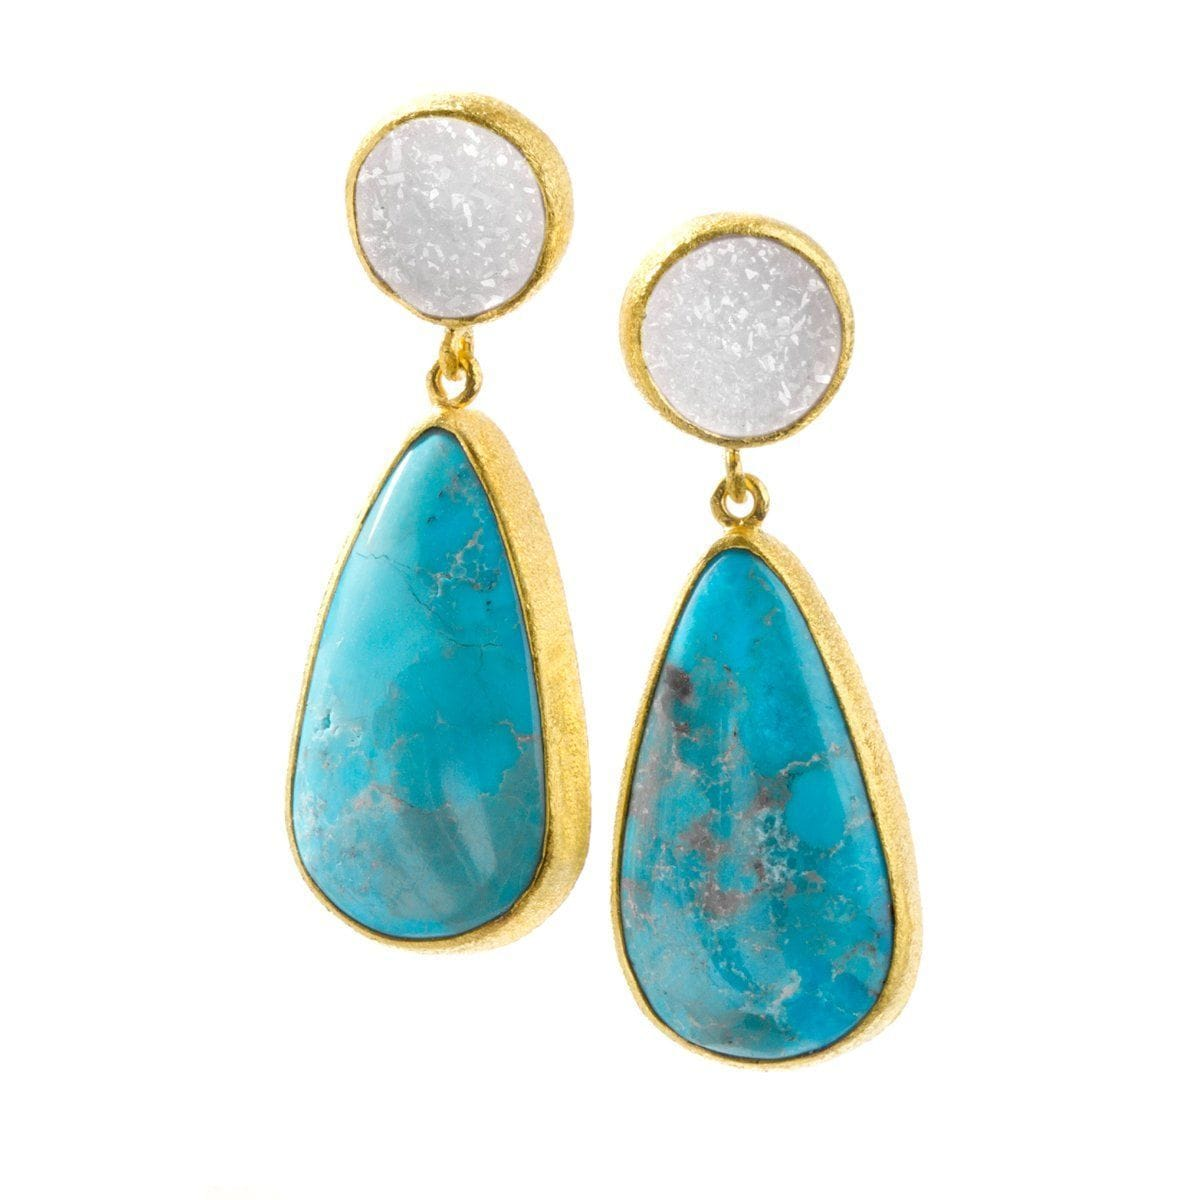 Valerian 22k Gold Plated & Turquoise Earrings - G4005E-TRQ